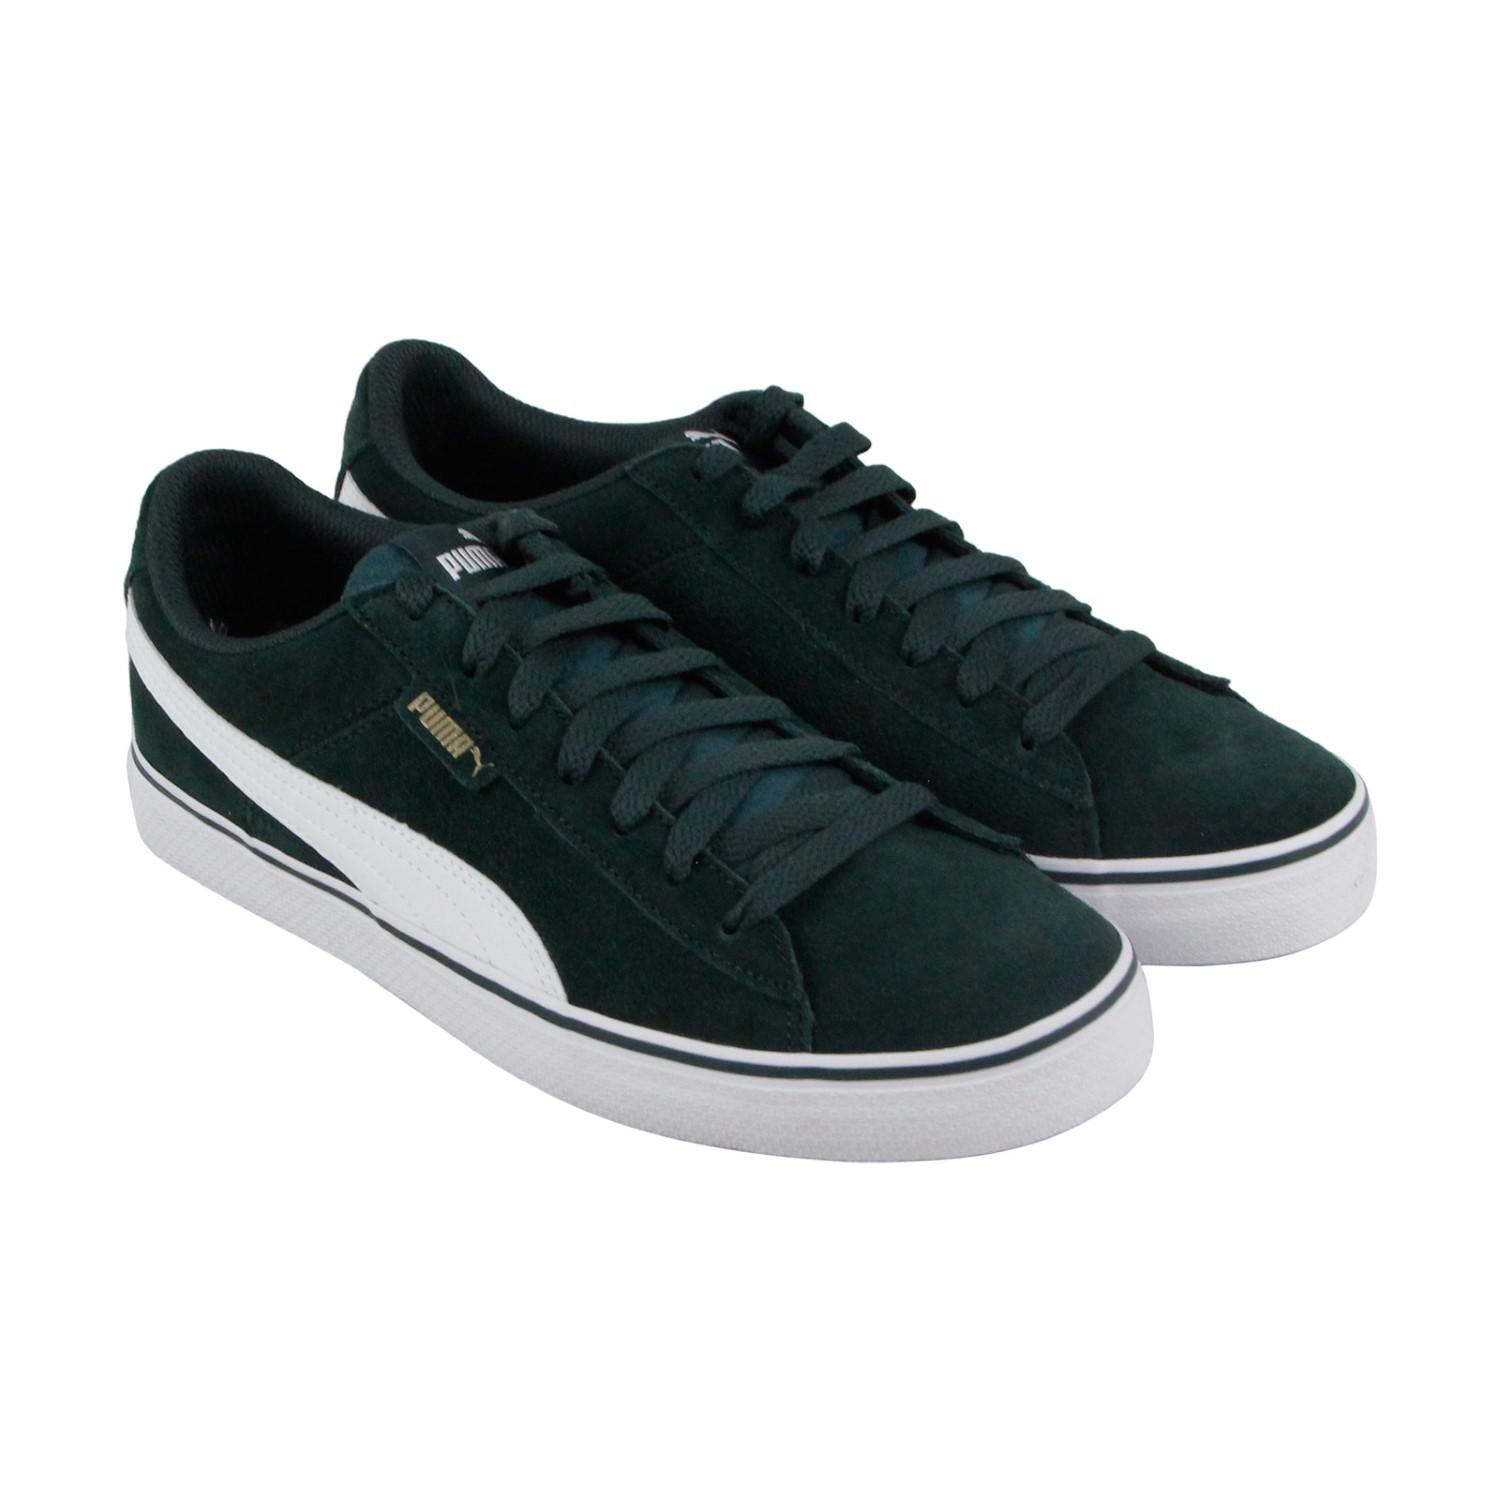 f6bada8c74ffe2 Lyst - PUMA 1948 Vulc Gables White Lace Up Sneakers in Green for Men